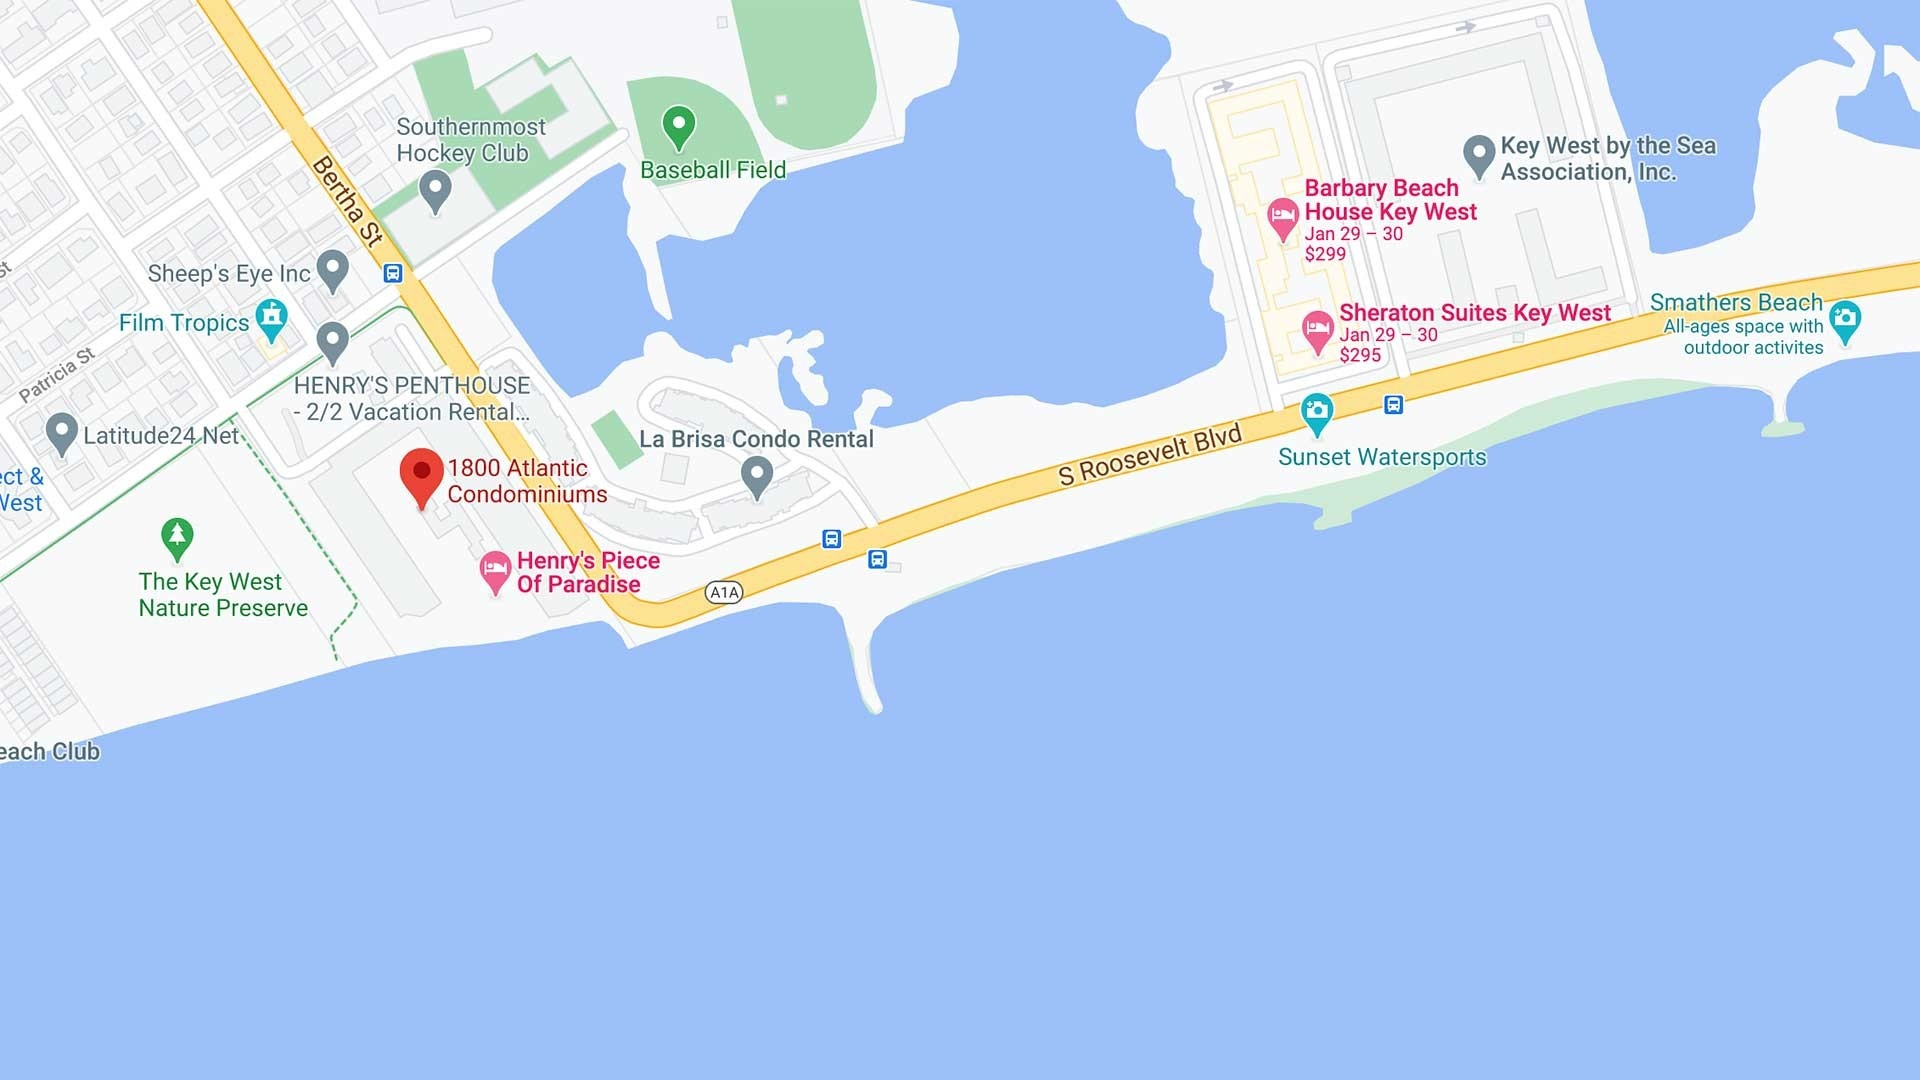 1800 Atlantic Condos in Key West, Florida